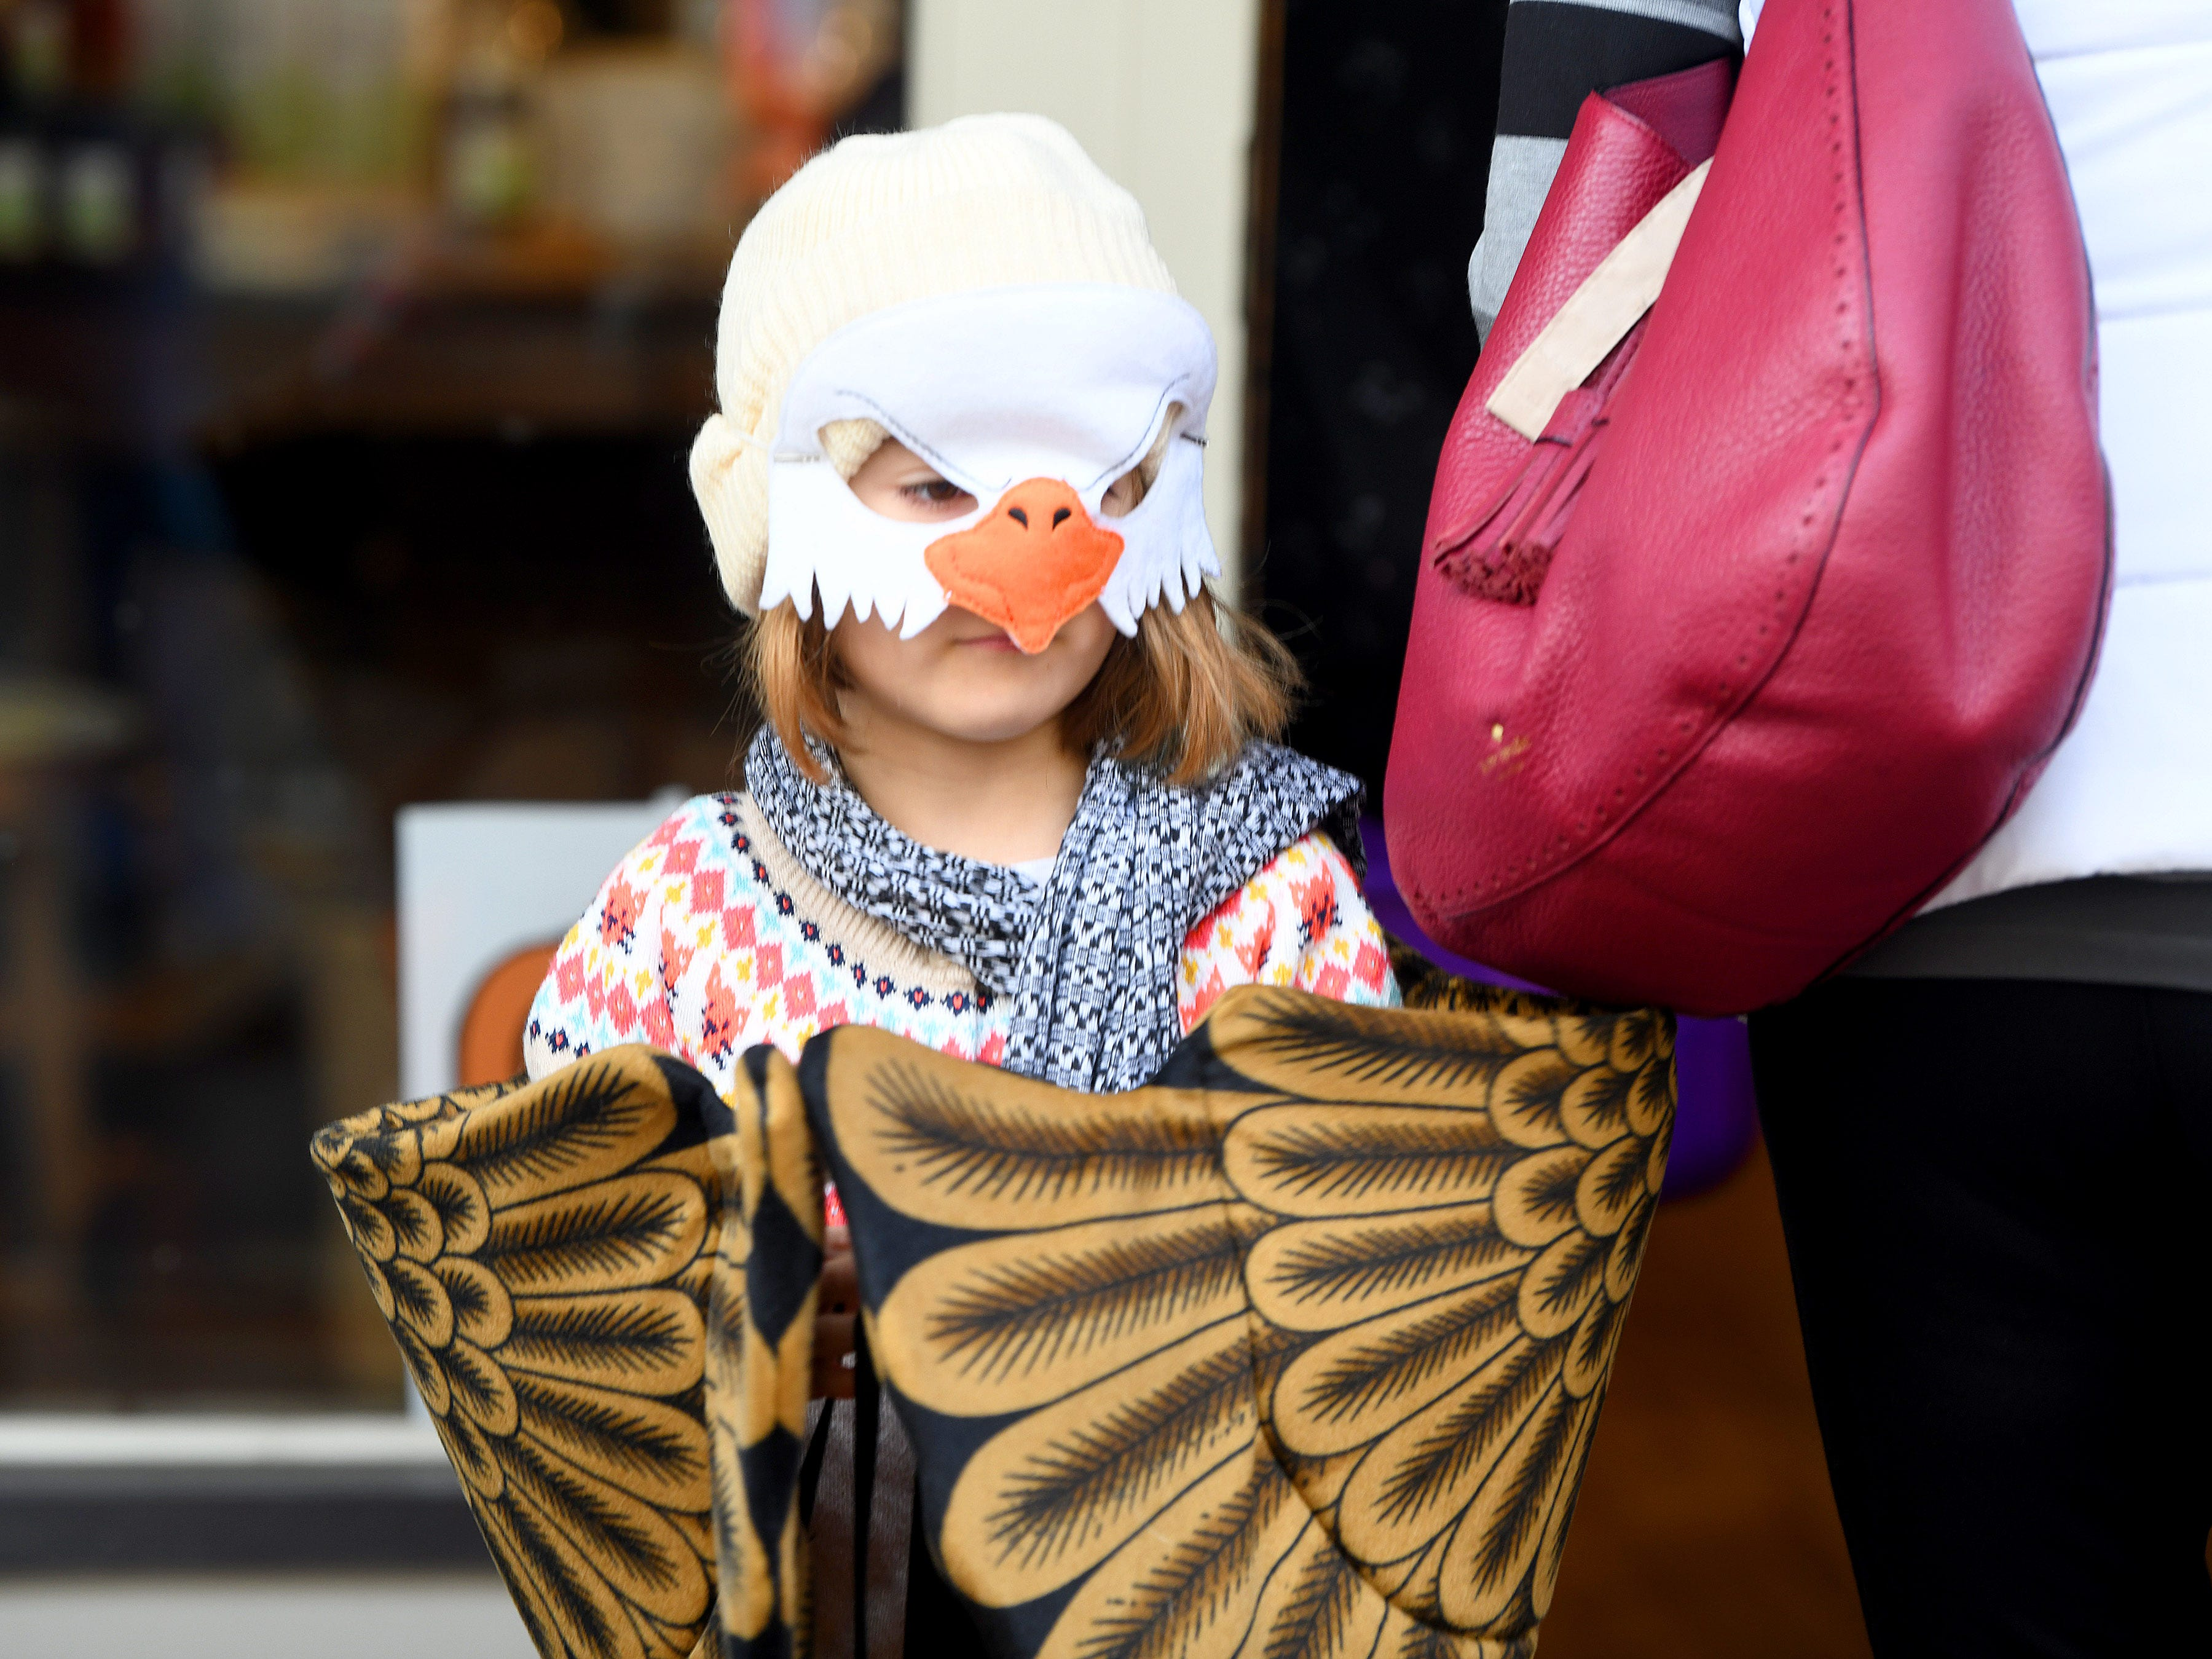 An eagle has wings folded while trick-or-treating in downtown Staunton on Saturday, Oct. 27, 2018.